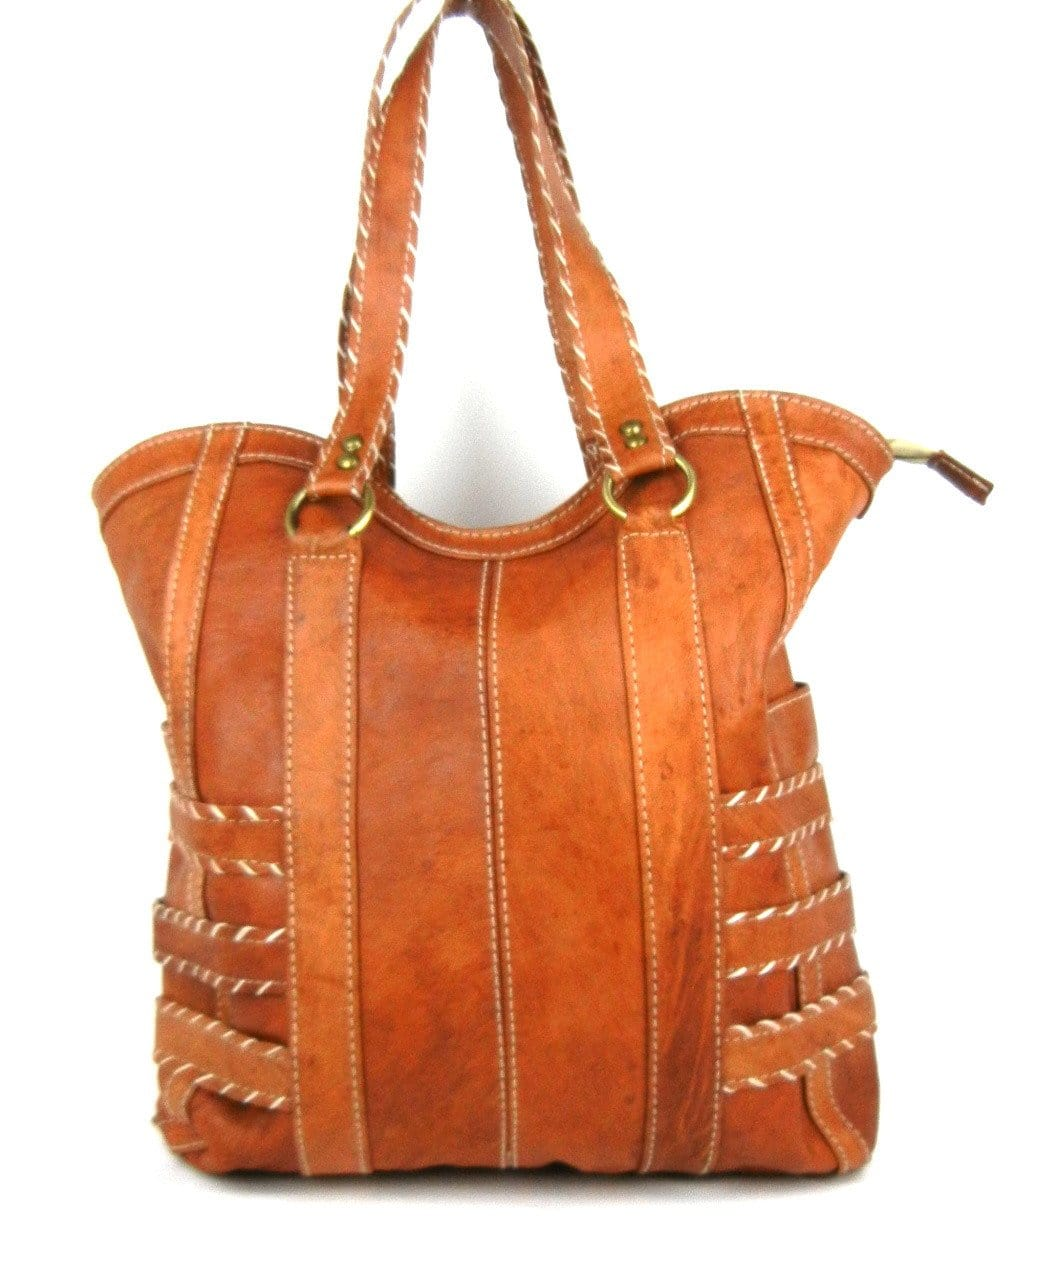 Topstitched Leather Tote